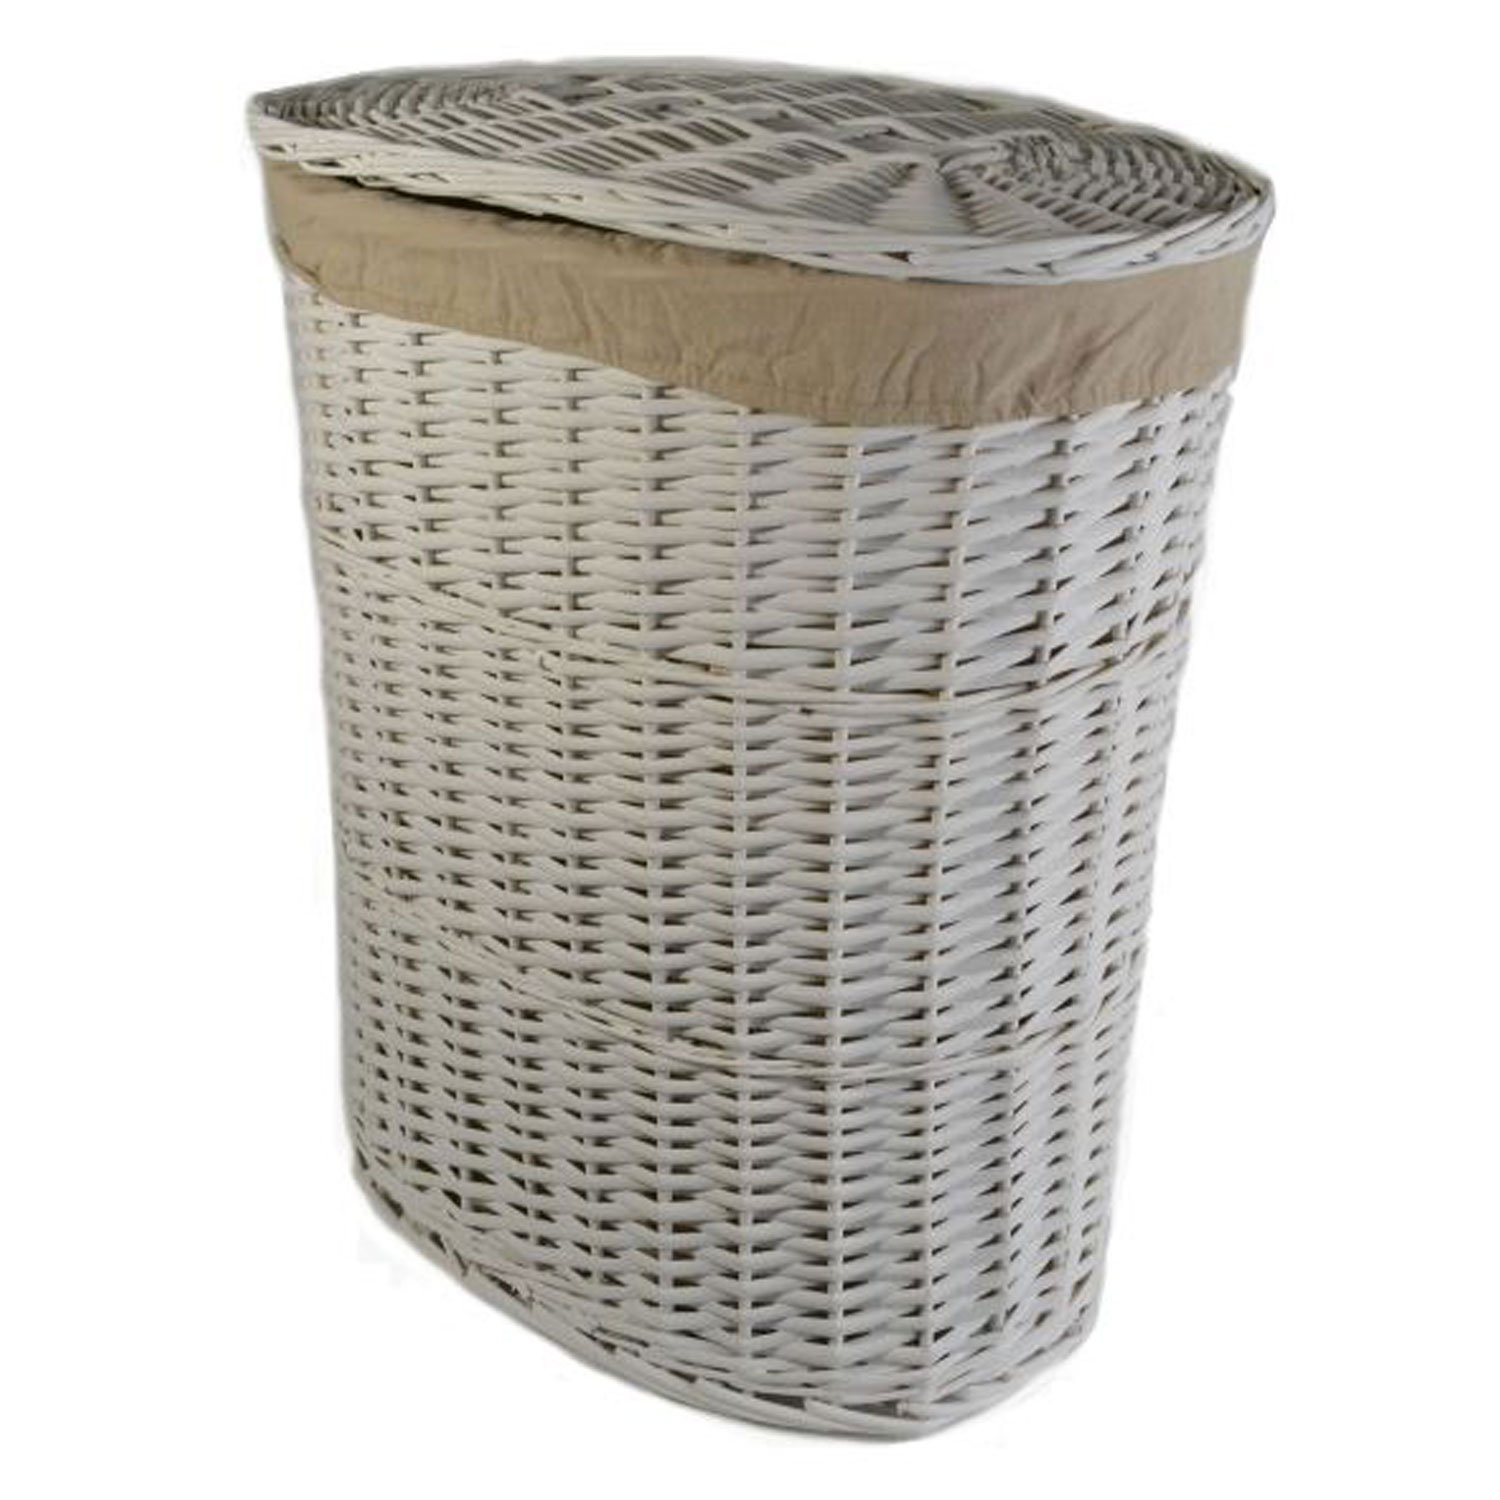 Closed Laundry Basket Jvl White Willow Storage Basket Large